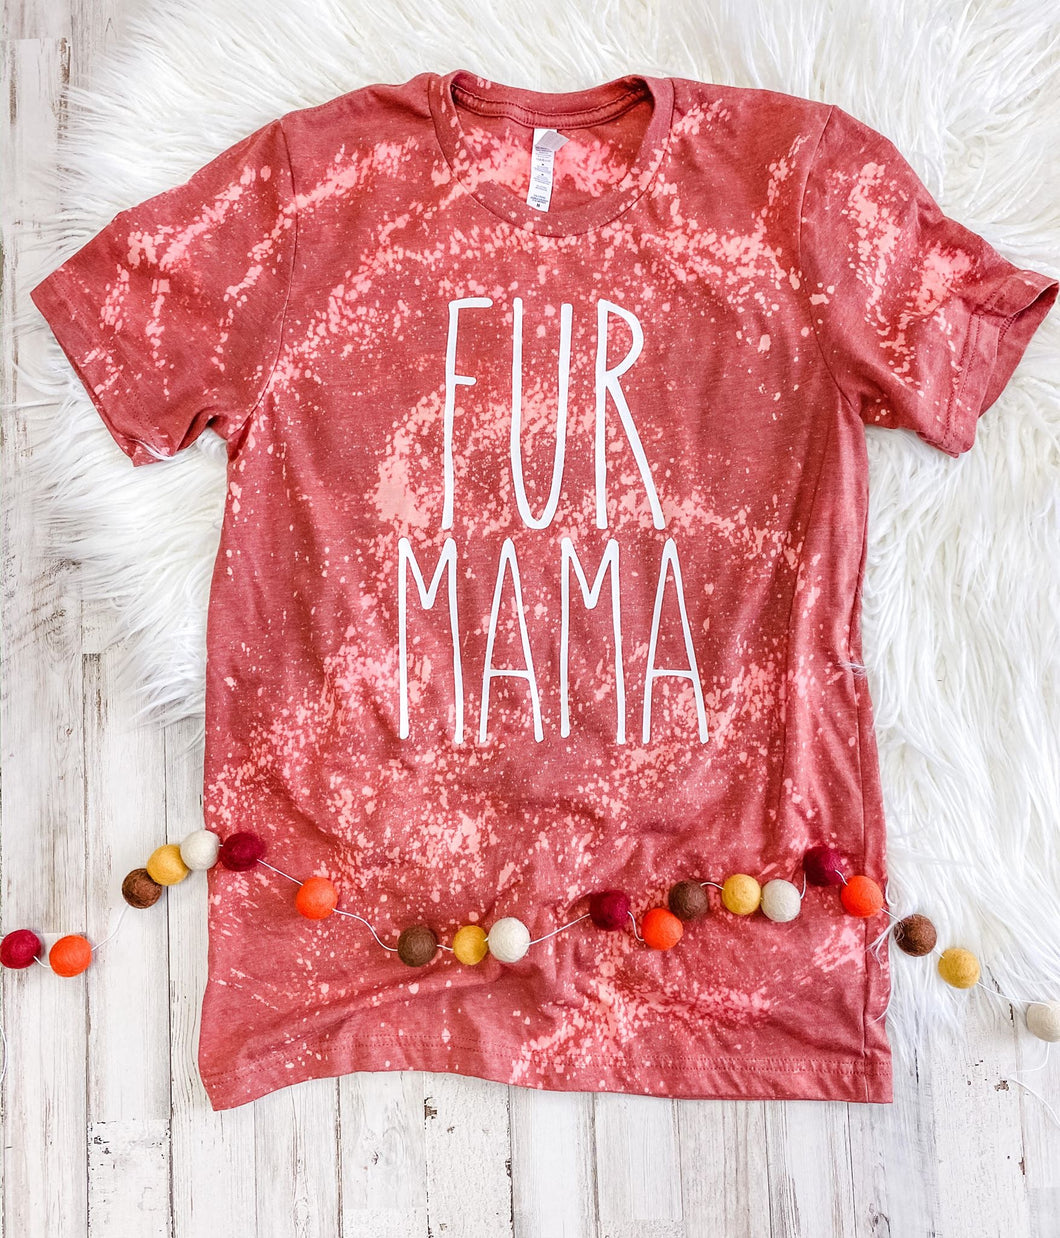 Fur Mama Transfers (New Version)